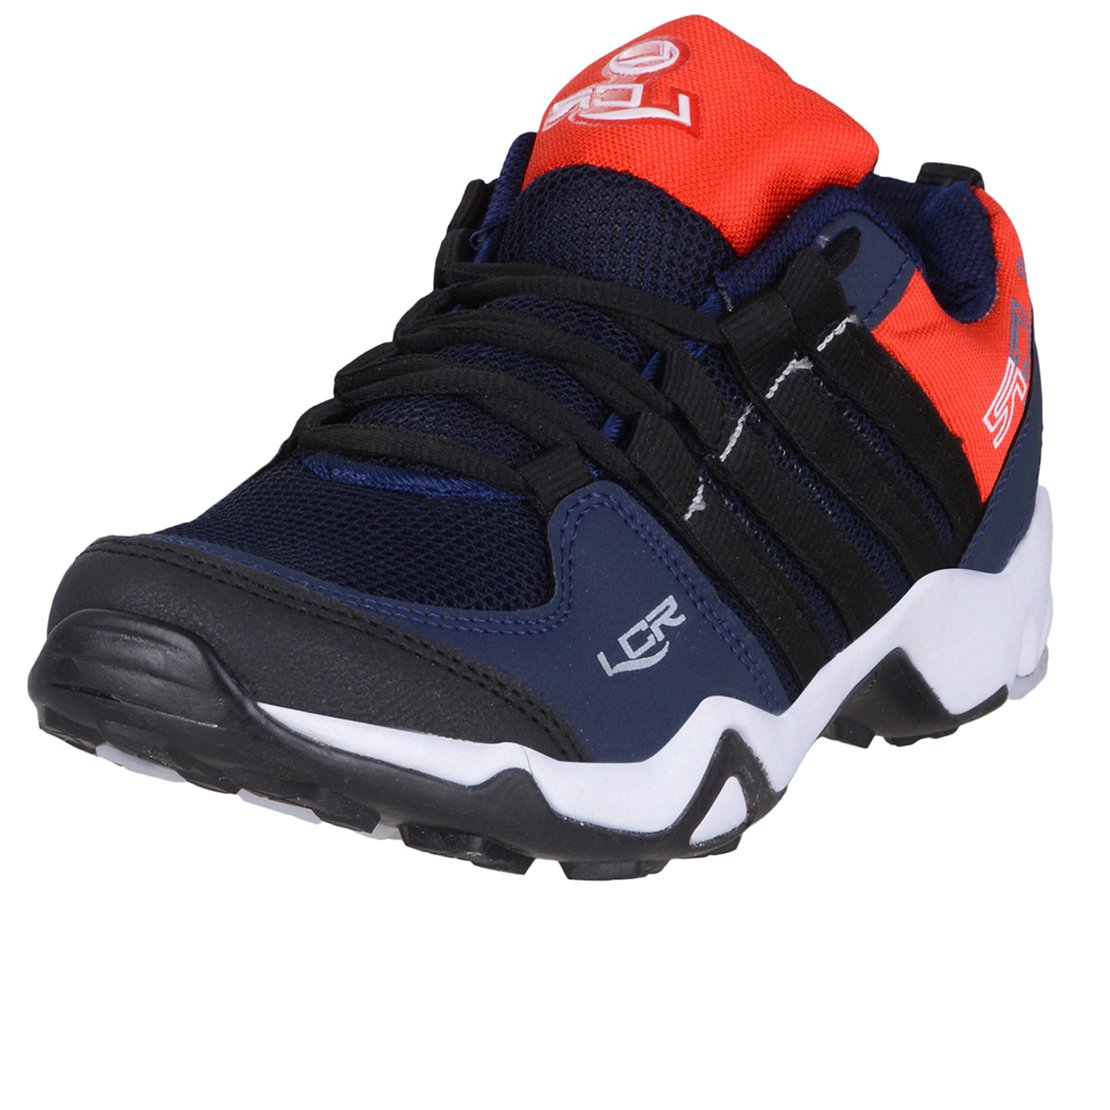 9e6d171e29 Lancer Men s Mesh Sports Running Walking Training and Gym Shoes ...